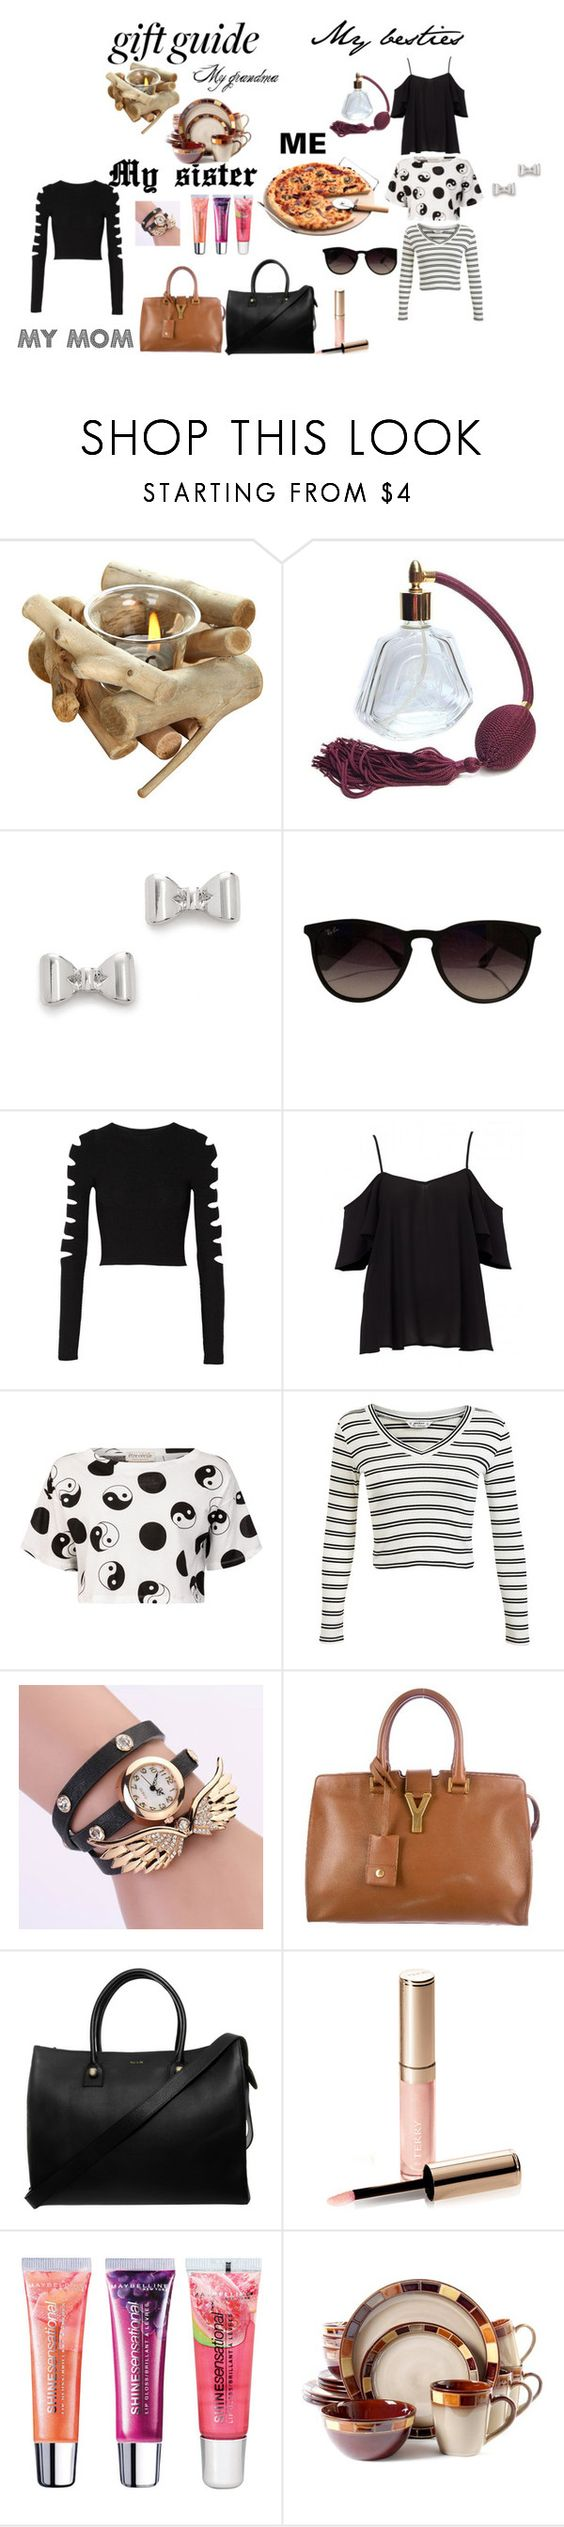 """And a Pizza please!"" by fabiagd ❤ liked on Polyvore featuring moda, Marc by Marc Jacobs, Ray-Ban, Cushnie Et Ochs, Être Cécile, Miss Selfridge, Yves Saint Laurent, Paul & Joe, By Terry e Maybelline"